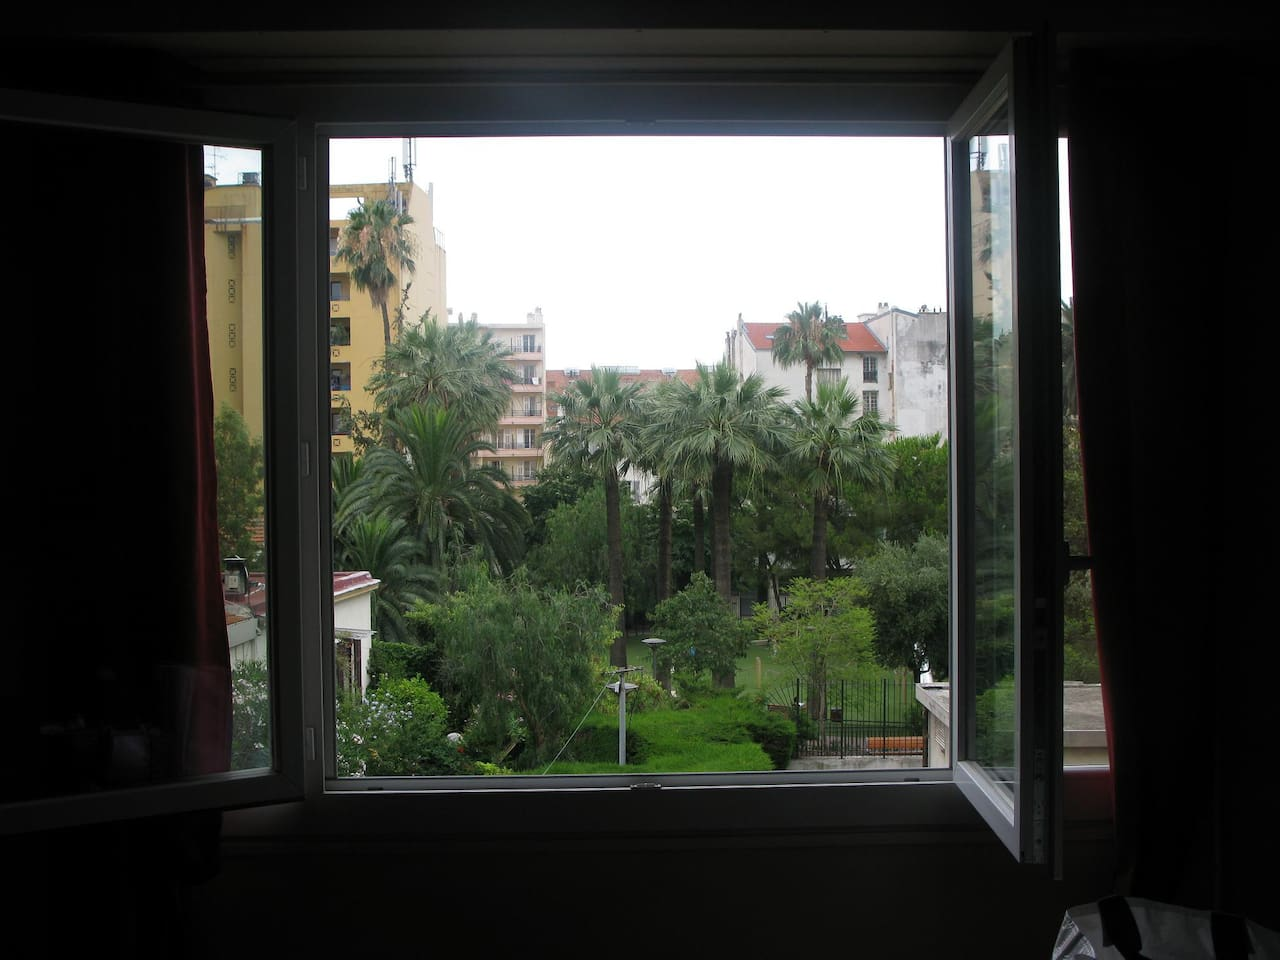 Vue de la chambre 1 / View from 1st bedroom